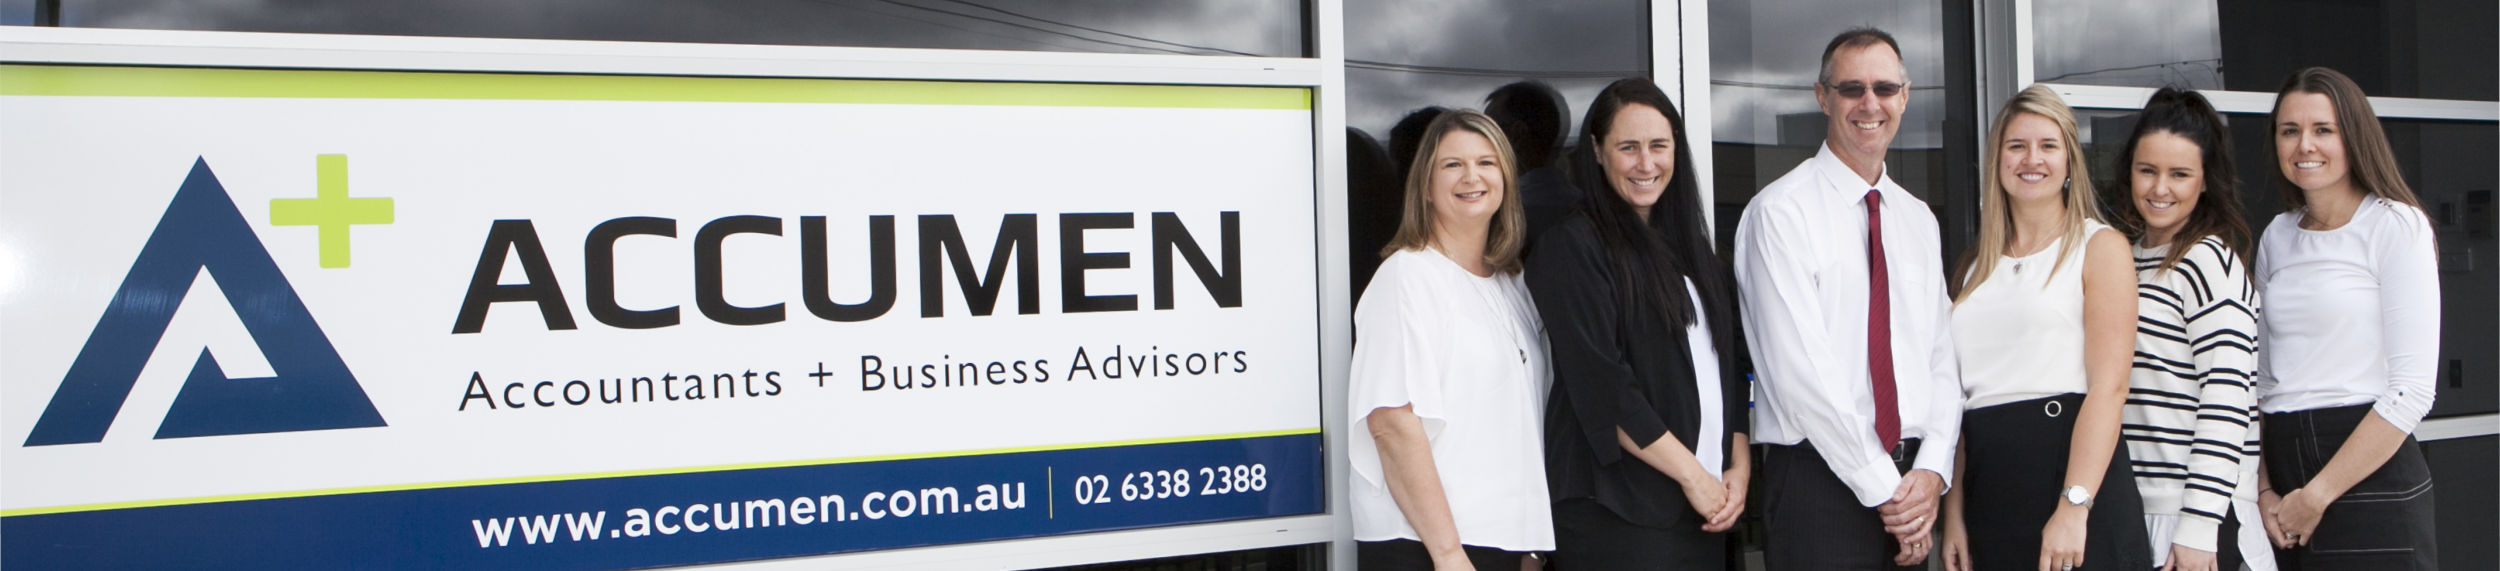 Accumen Accountants and Business Advisors Home